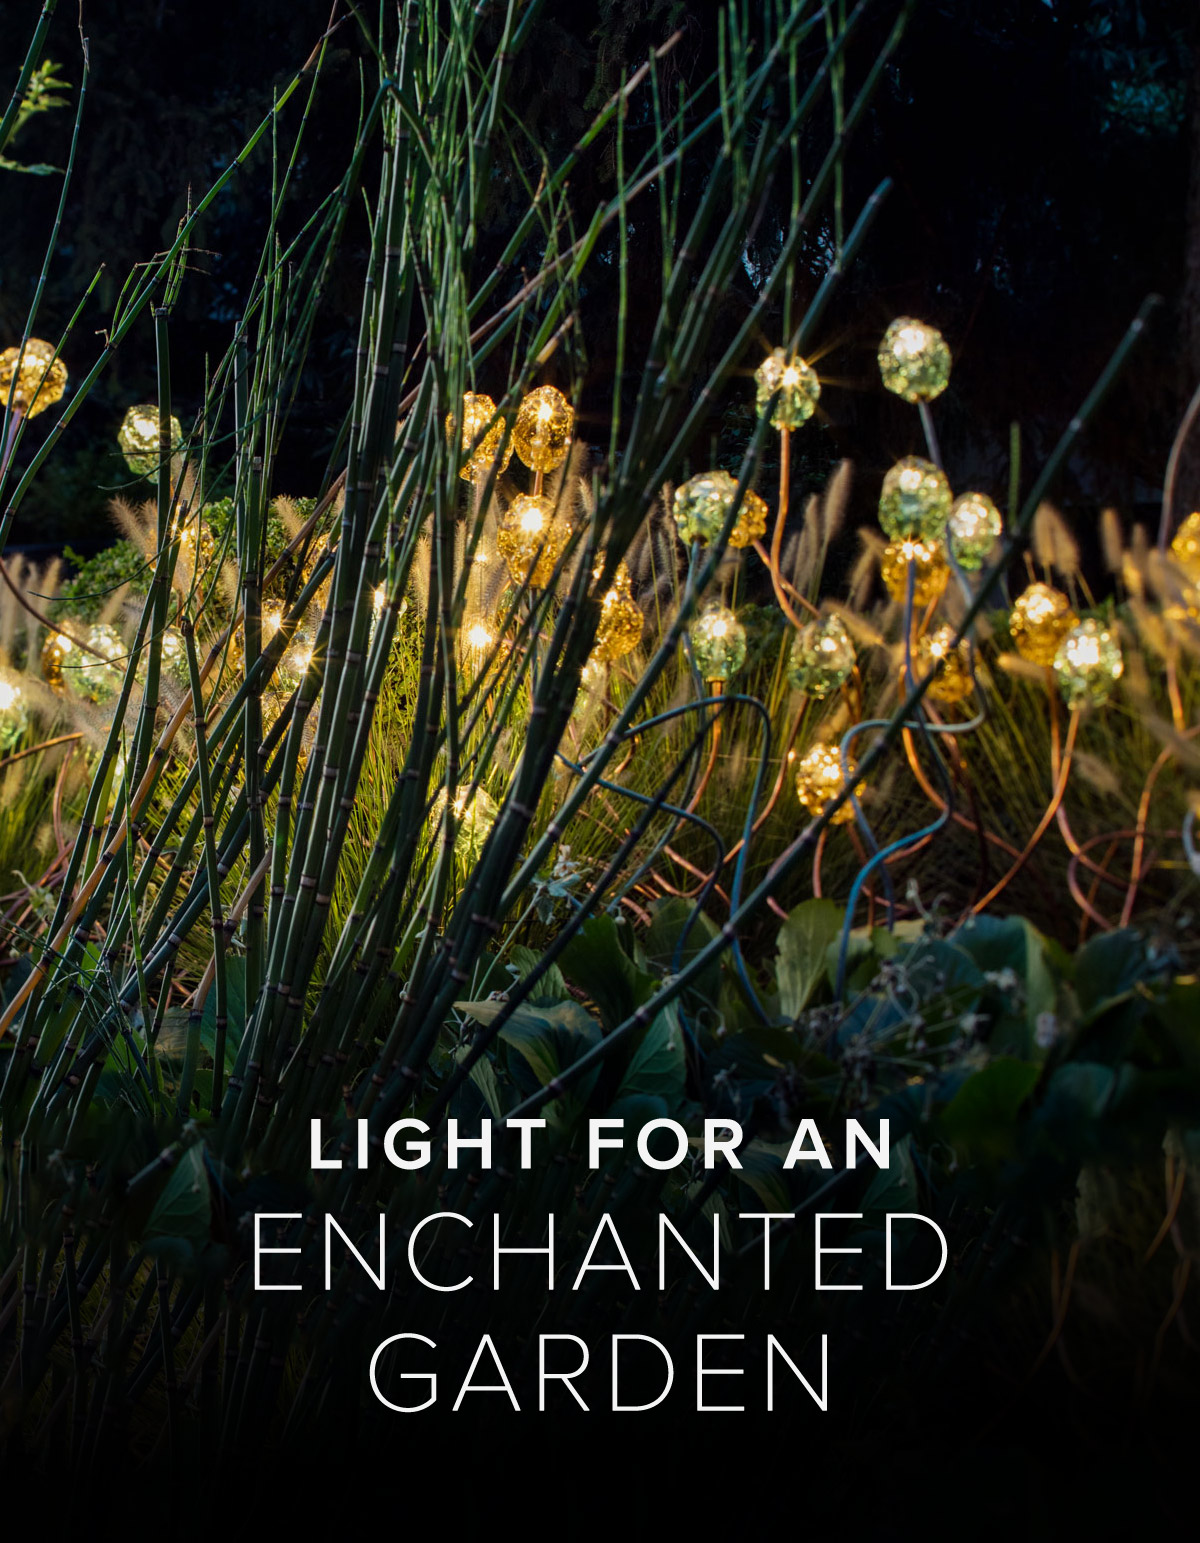 Lights for an Enchanted Garden